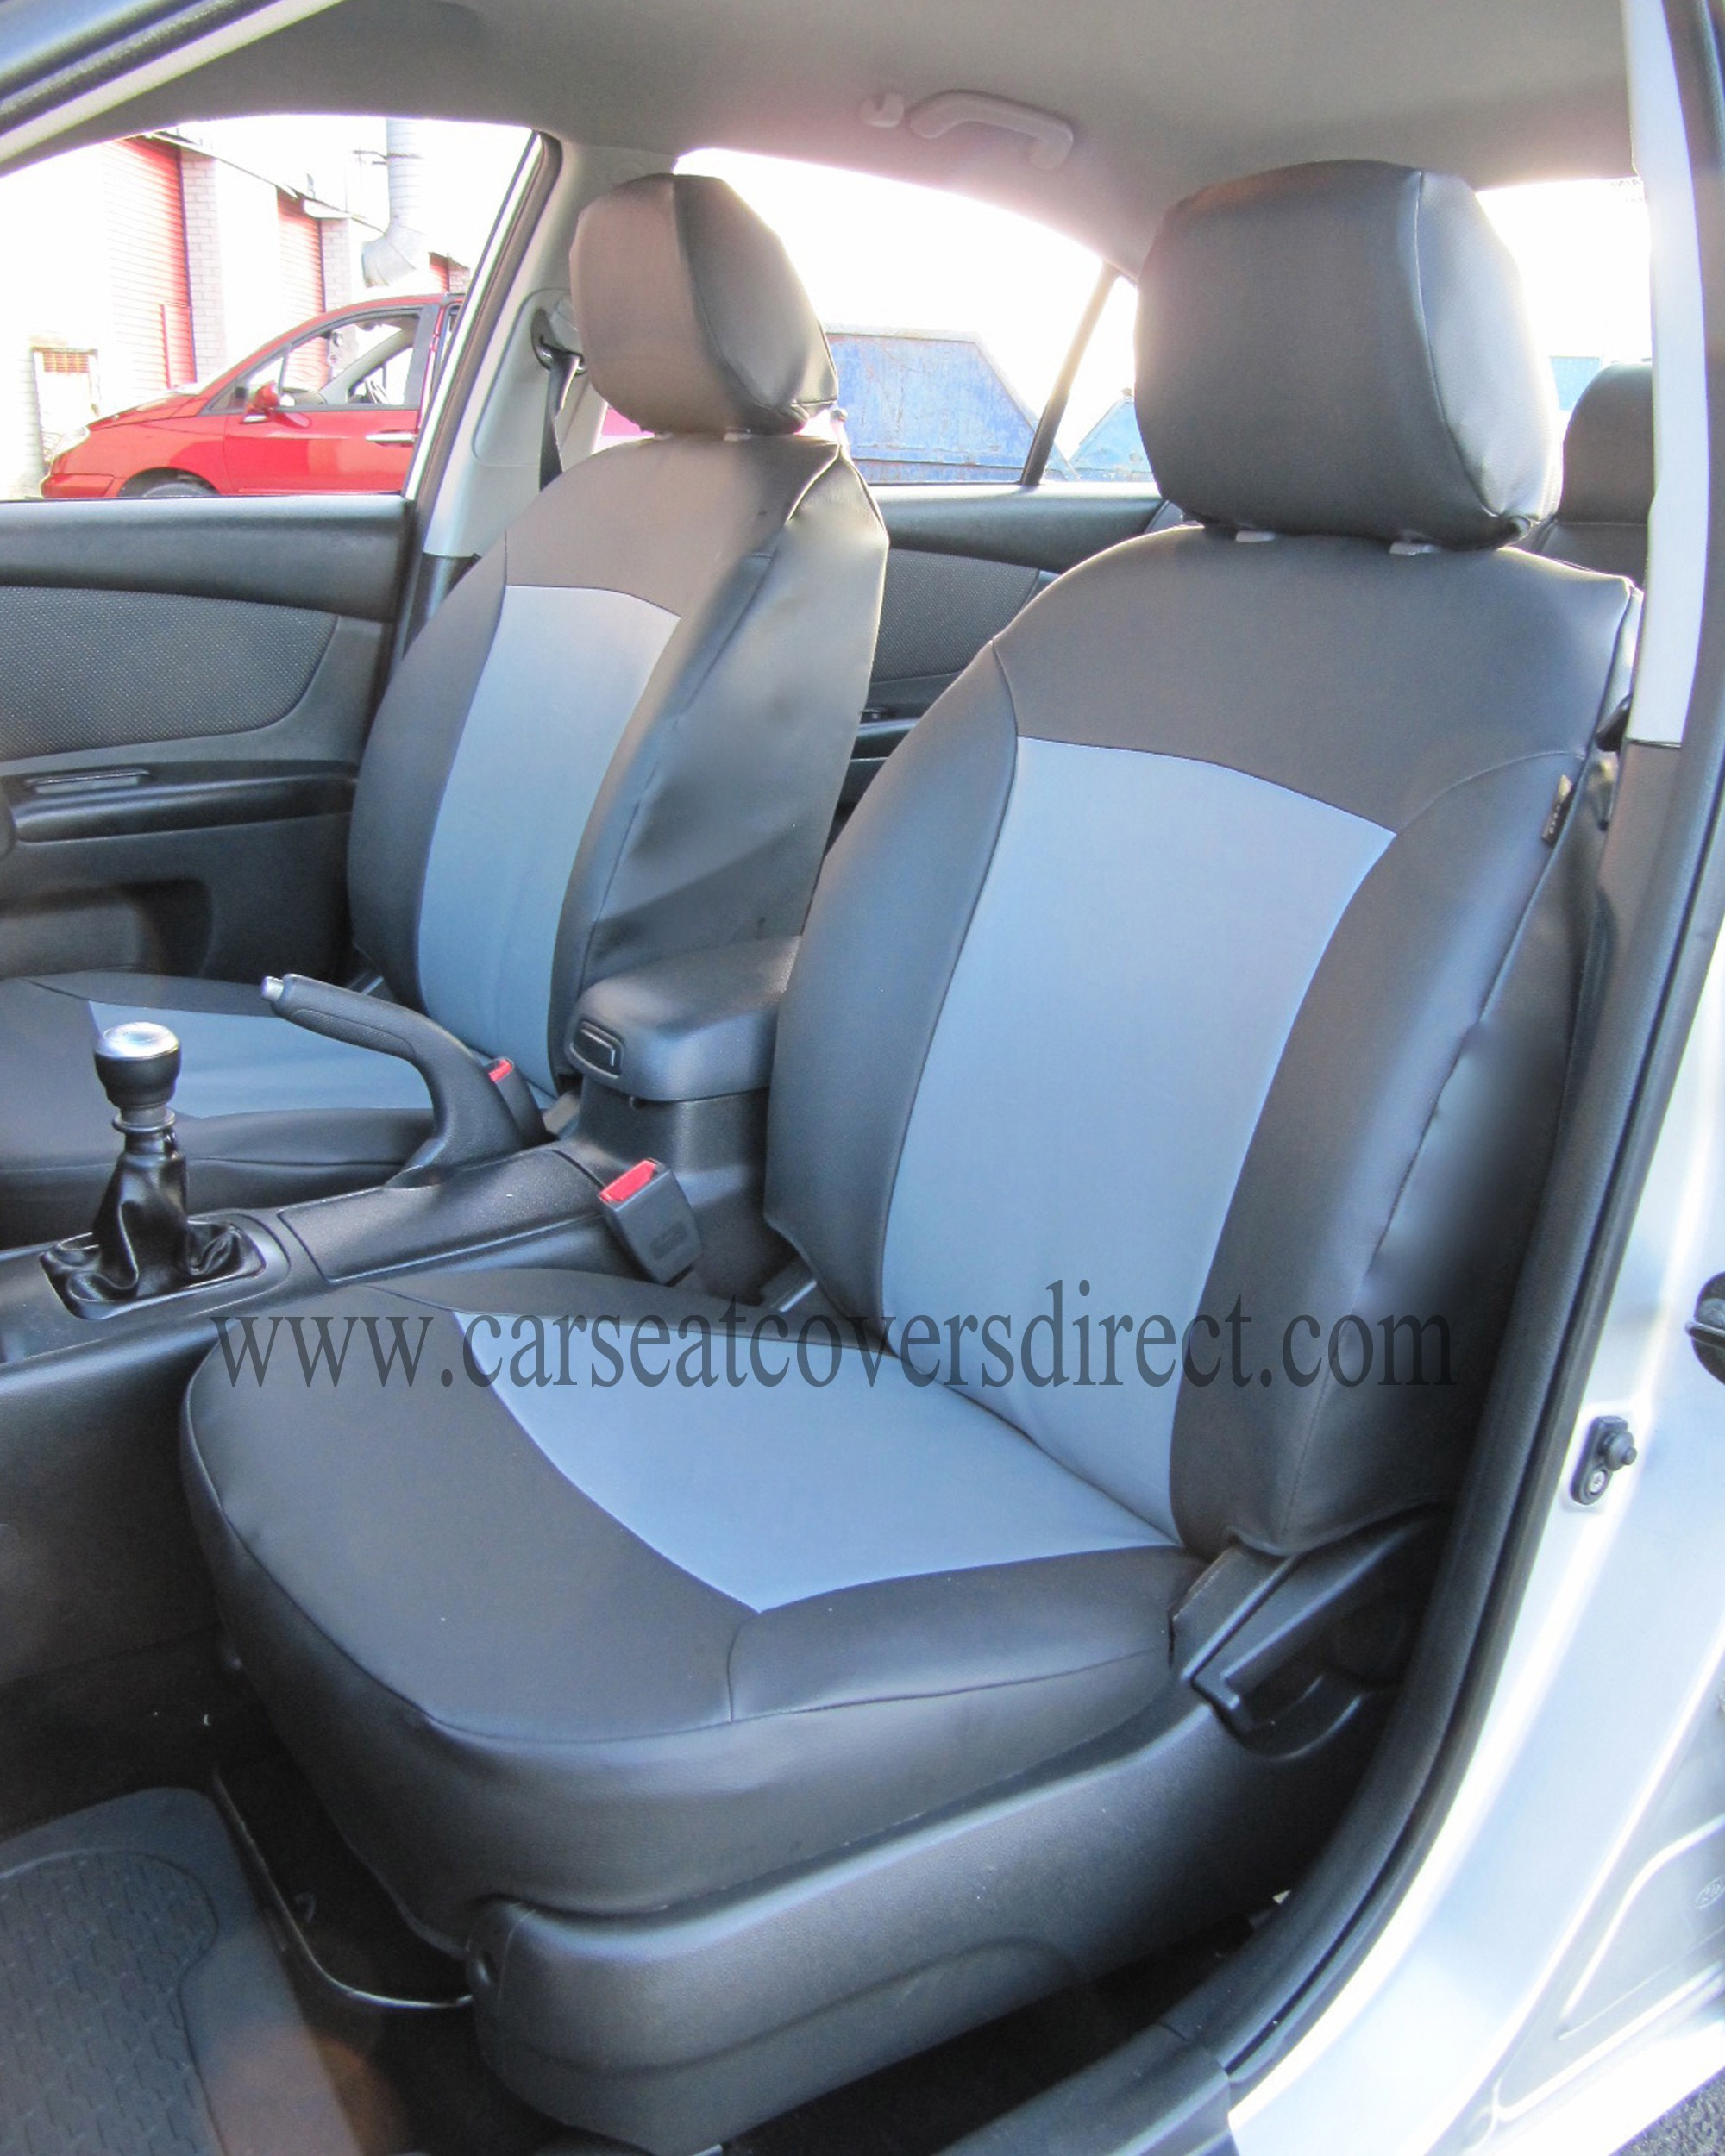 Kia Magentis (2005-2010) Seat Covers